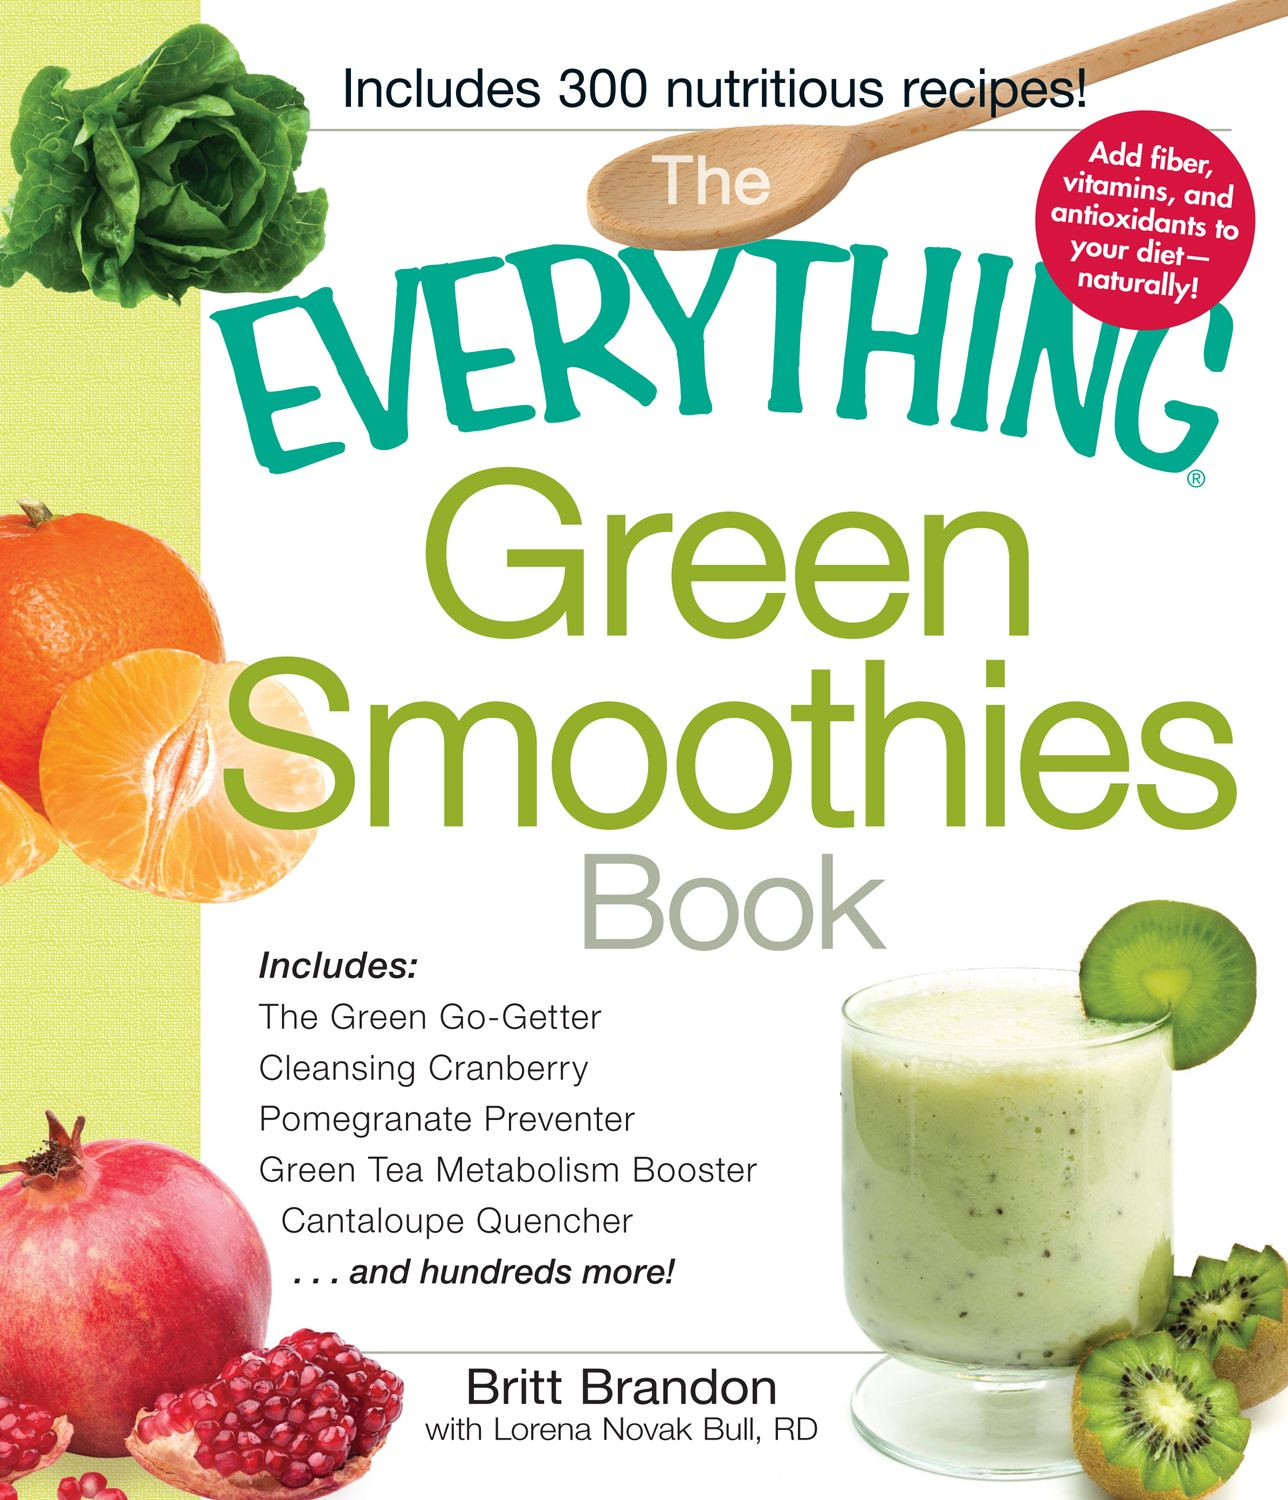 The Everything Green Smoothies Book: Includes The Green Go-Getter, Cleansing Cranberry, Pomegranate Preventer, Green Tea Metabolism booster, Cantaloupe Quencher…and hundreds more!